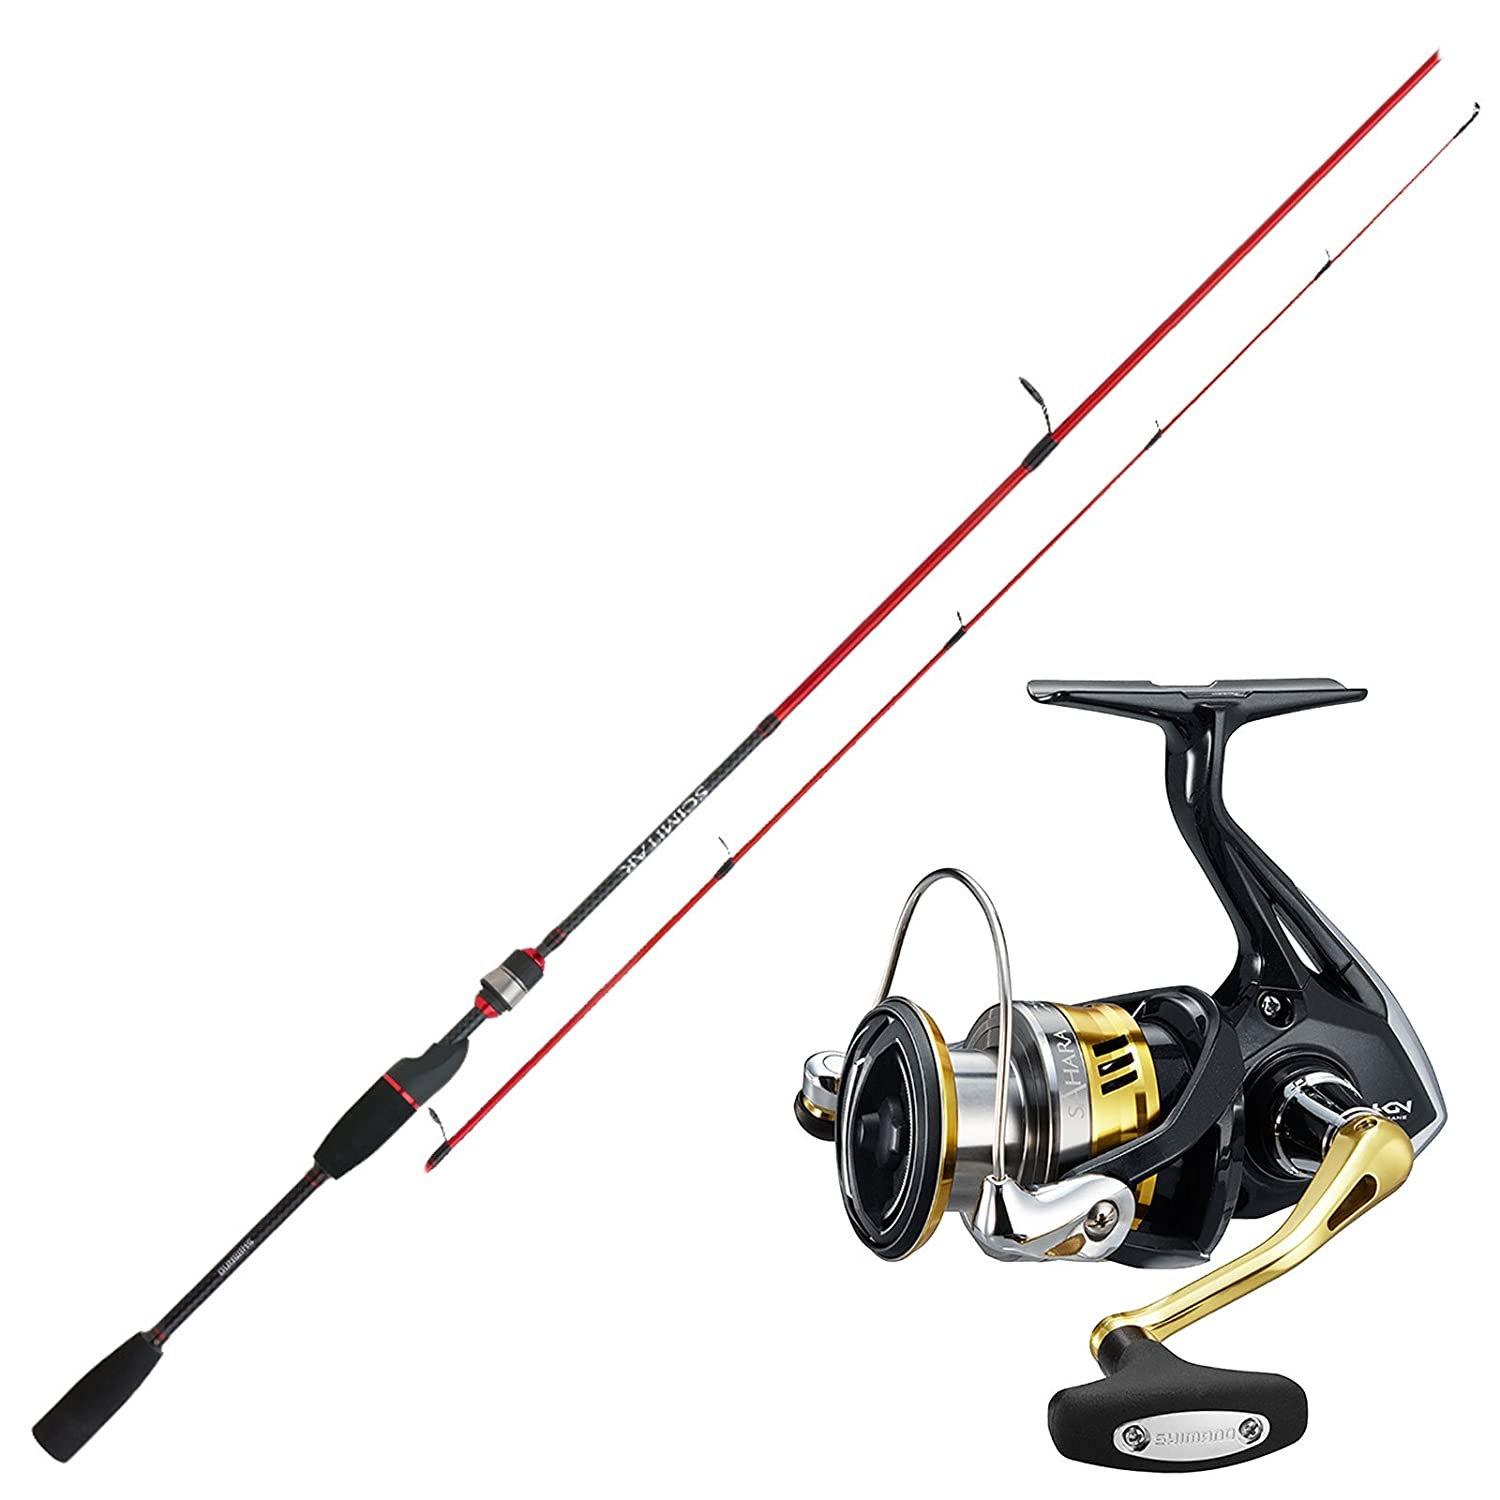 Spinnangeln Combo No2 SHIMANO Angelset Hecht Angeln Rute Rolle